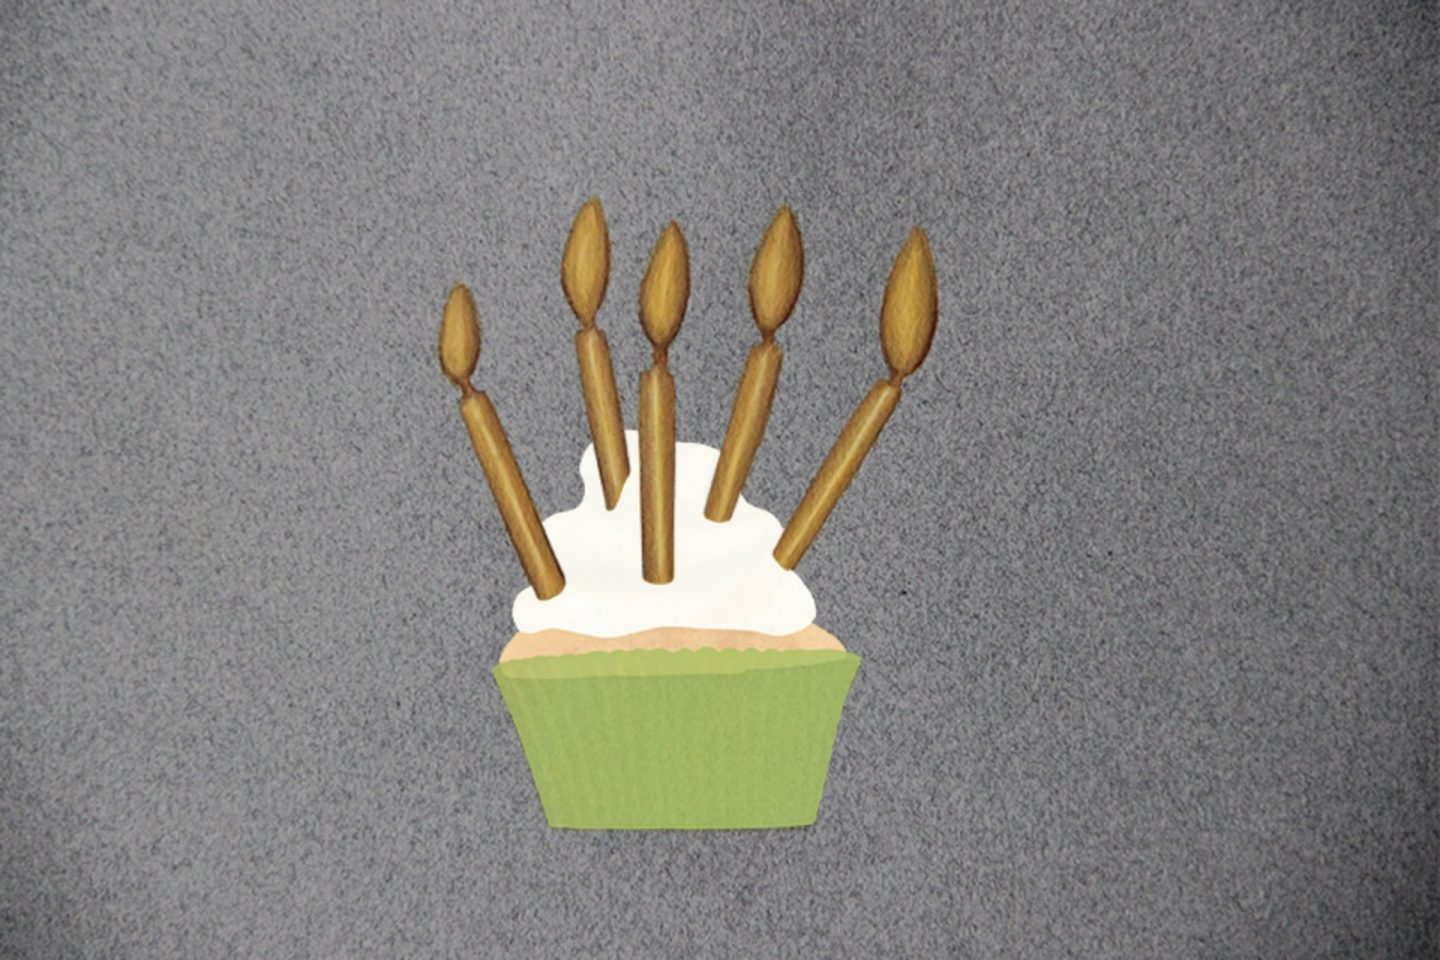 Painting of 5 gold candles on top of a drawing of a cupcake with a green fold topped with white whipped cream.